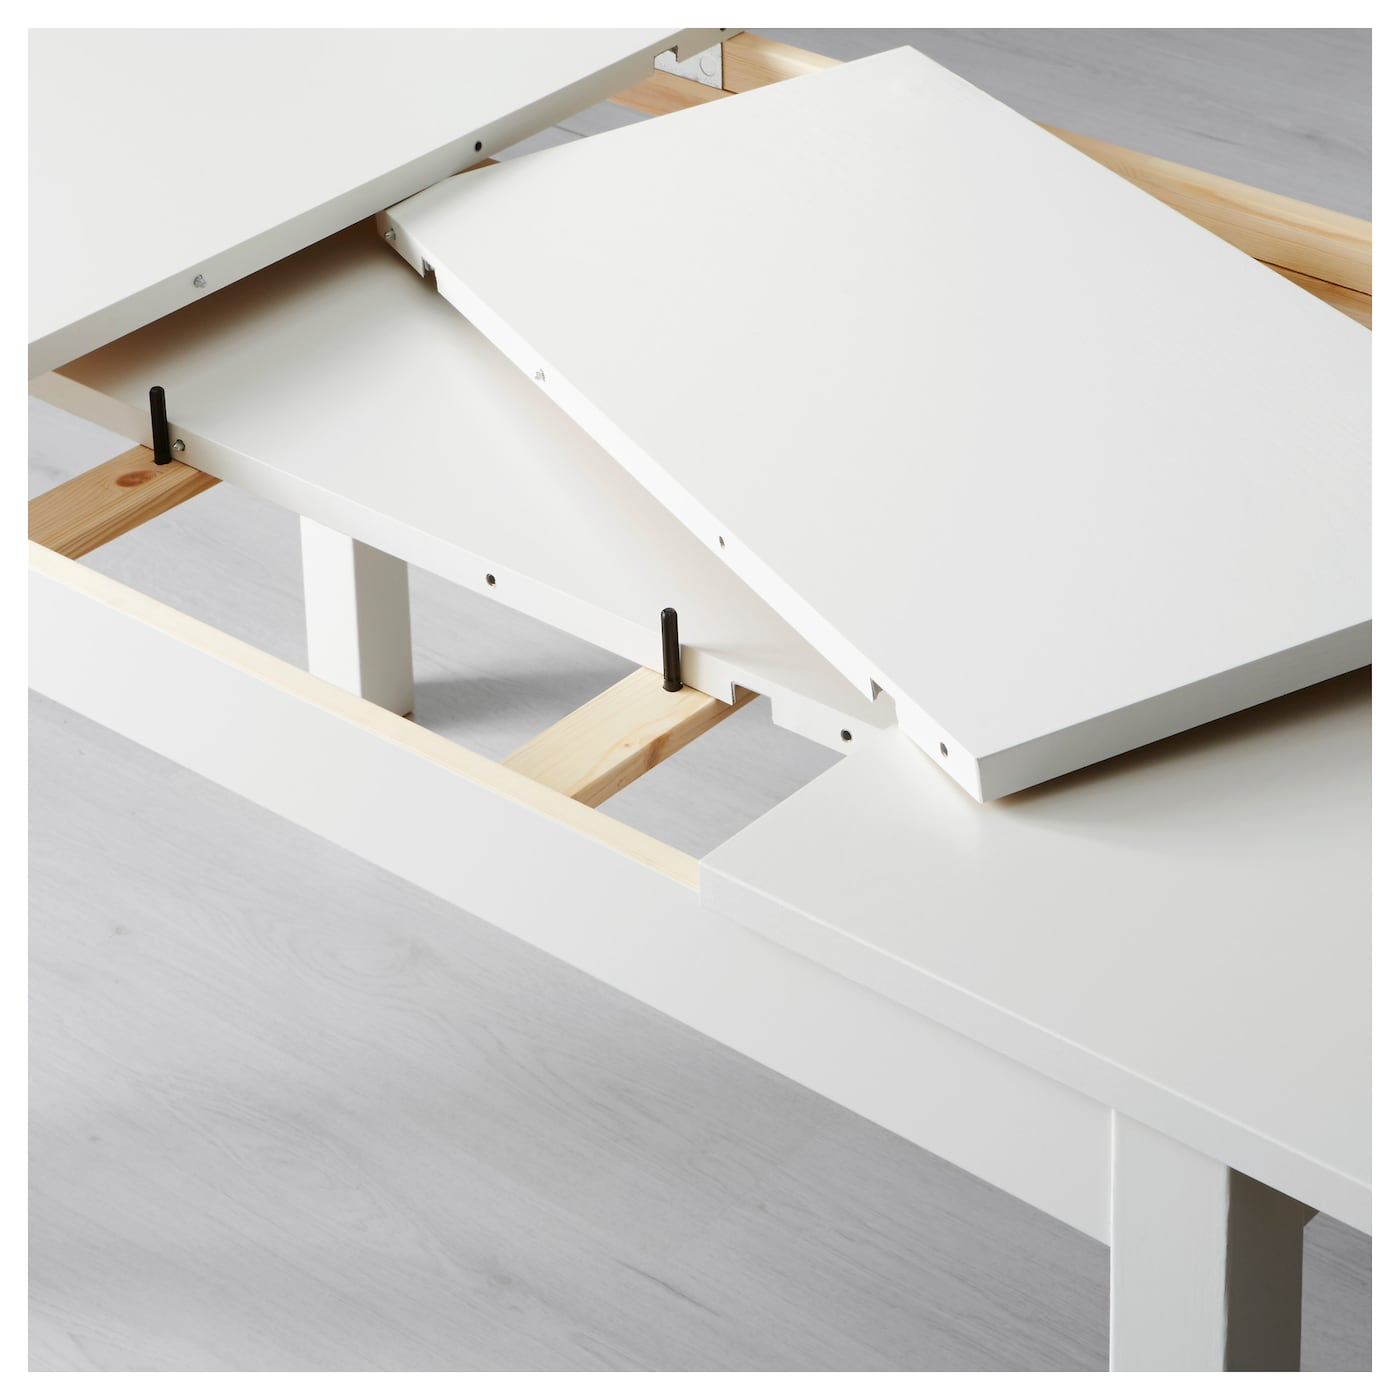 BJURSTA Extendable table White 140180220x84 cm IKEA